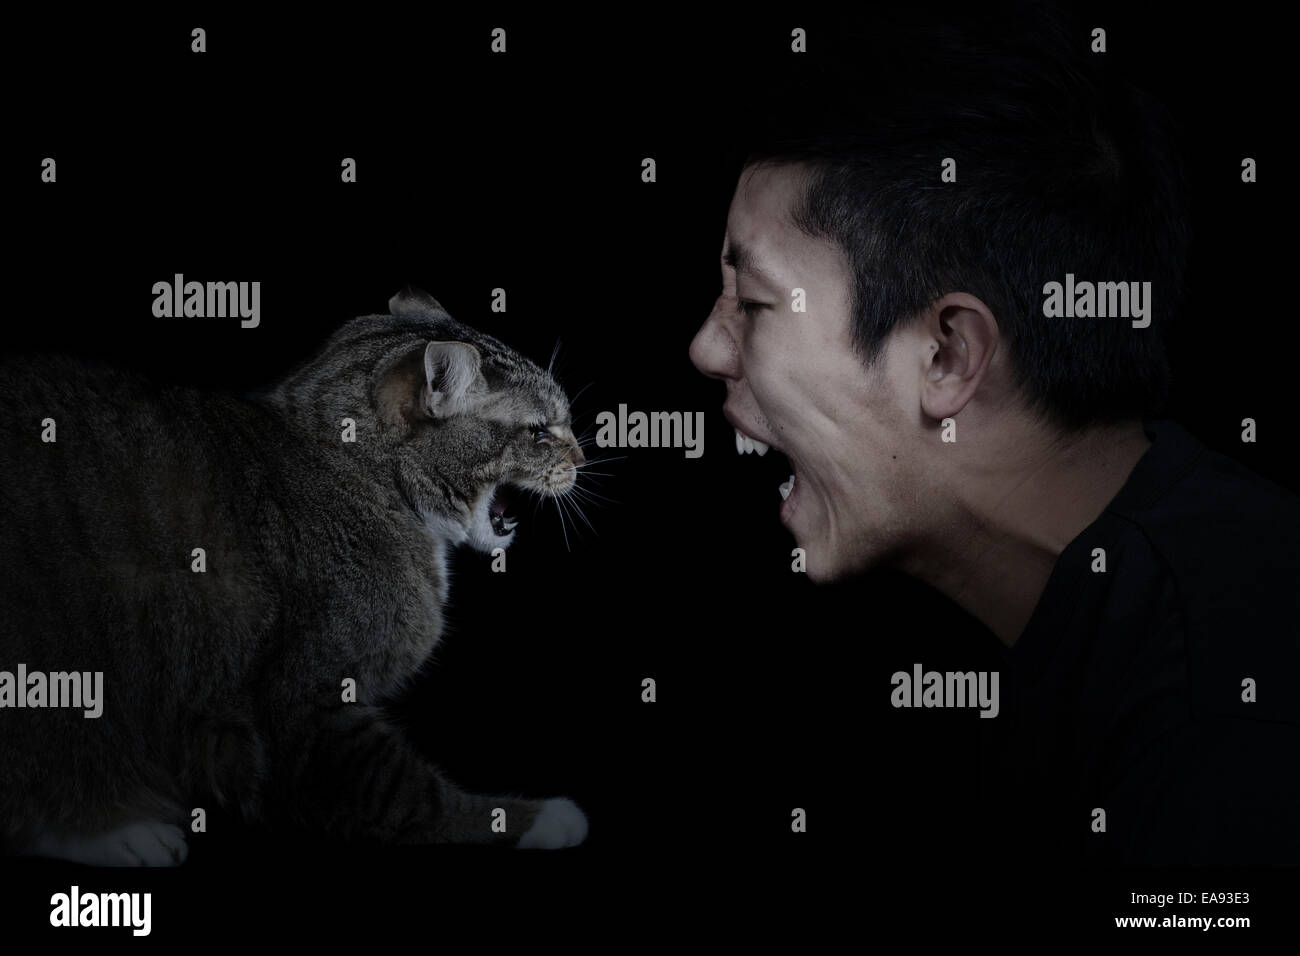 Close up of a Cat and Man showing anger towards each other on black background with light on faces - Stock Image